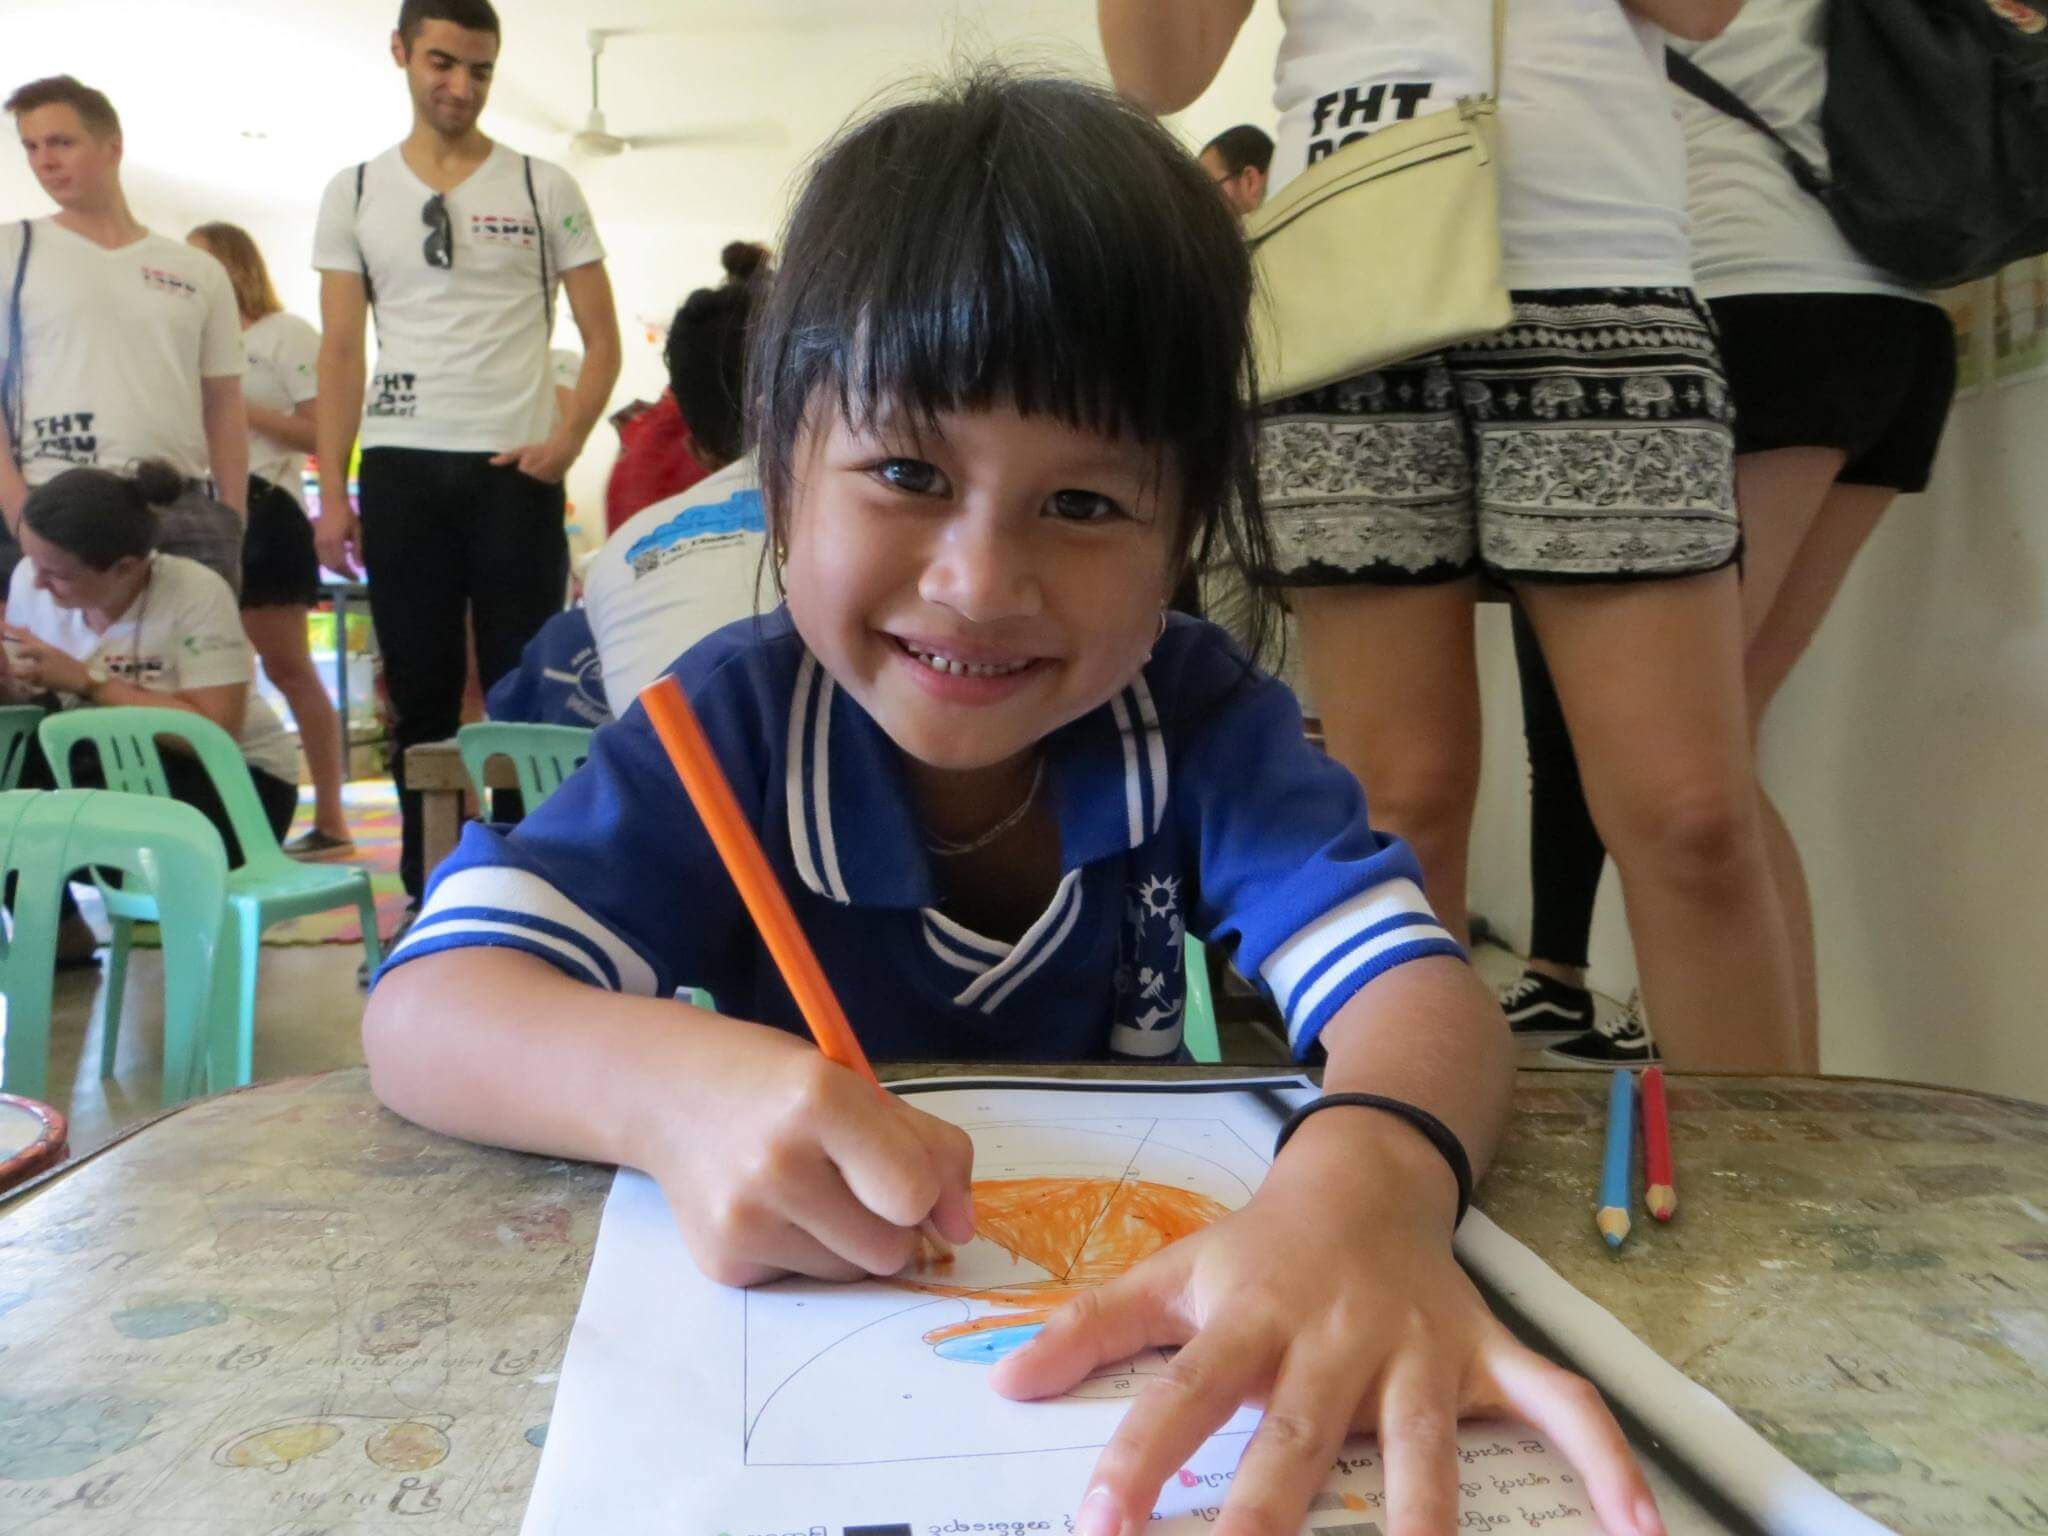 A child is smiling into the camera while she is holding a orange pen in Phuket.